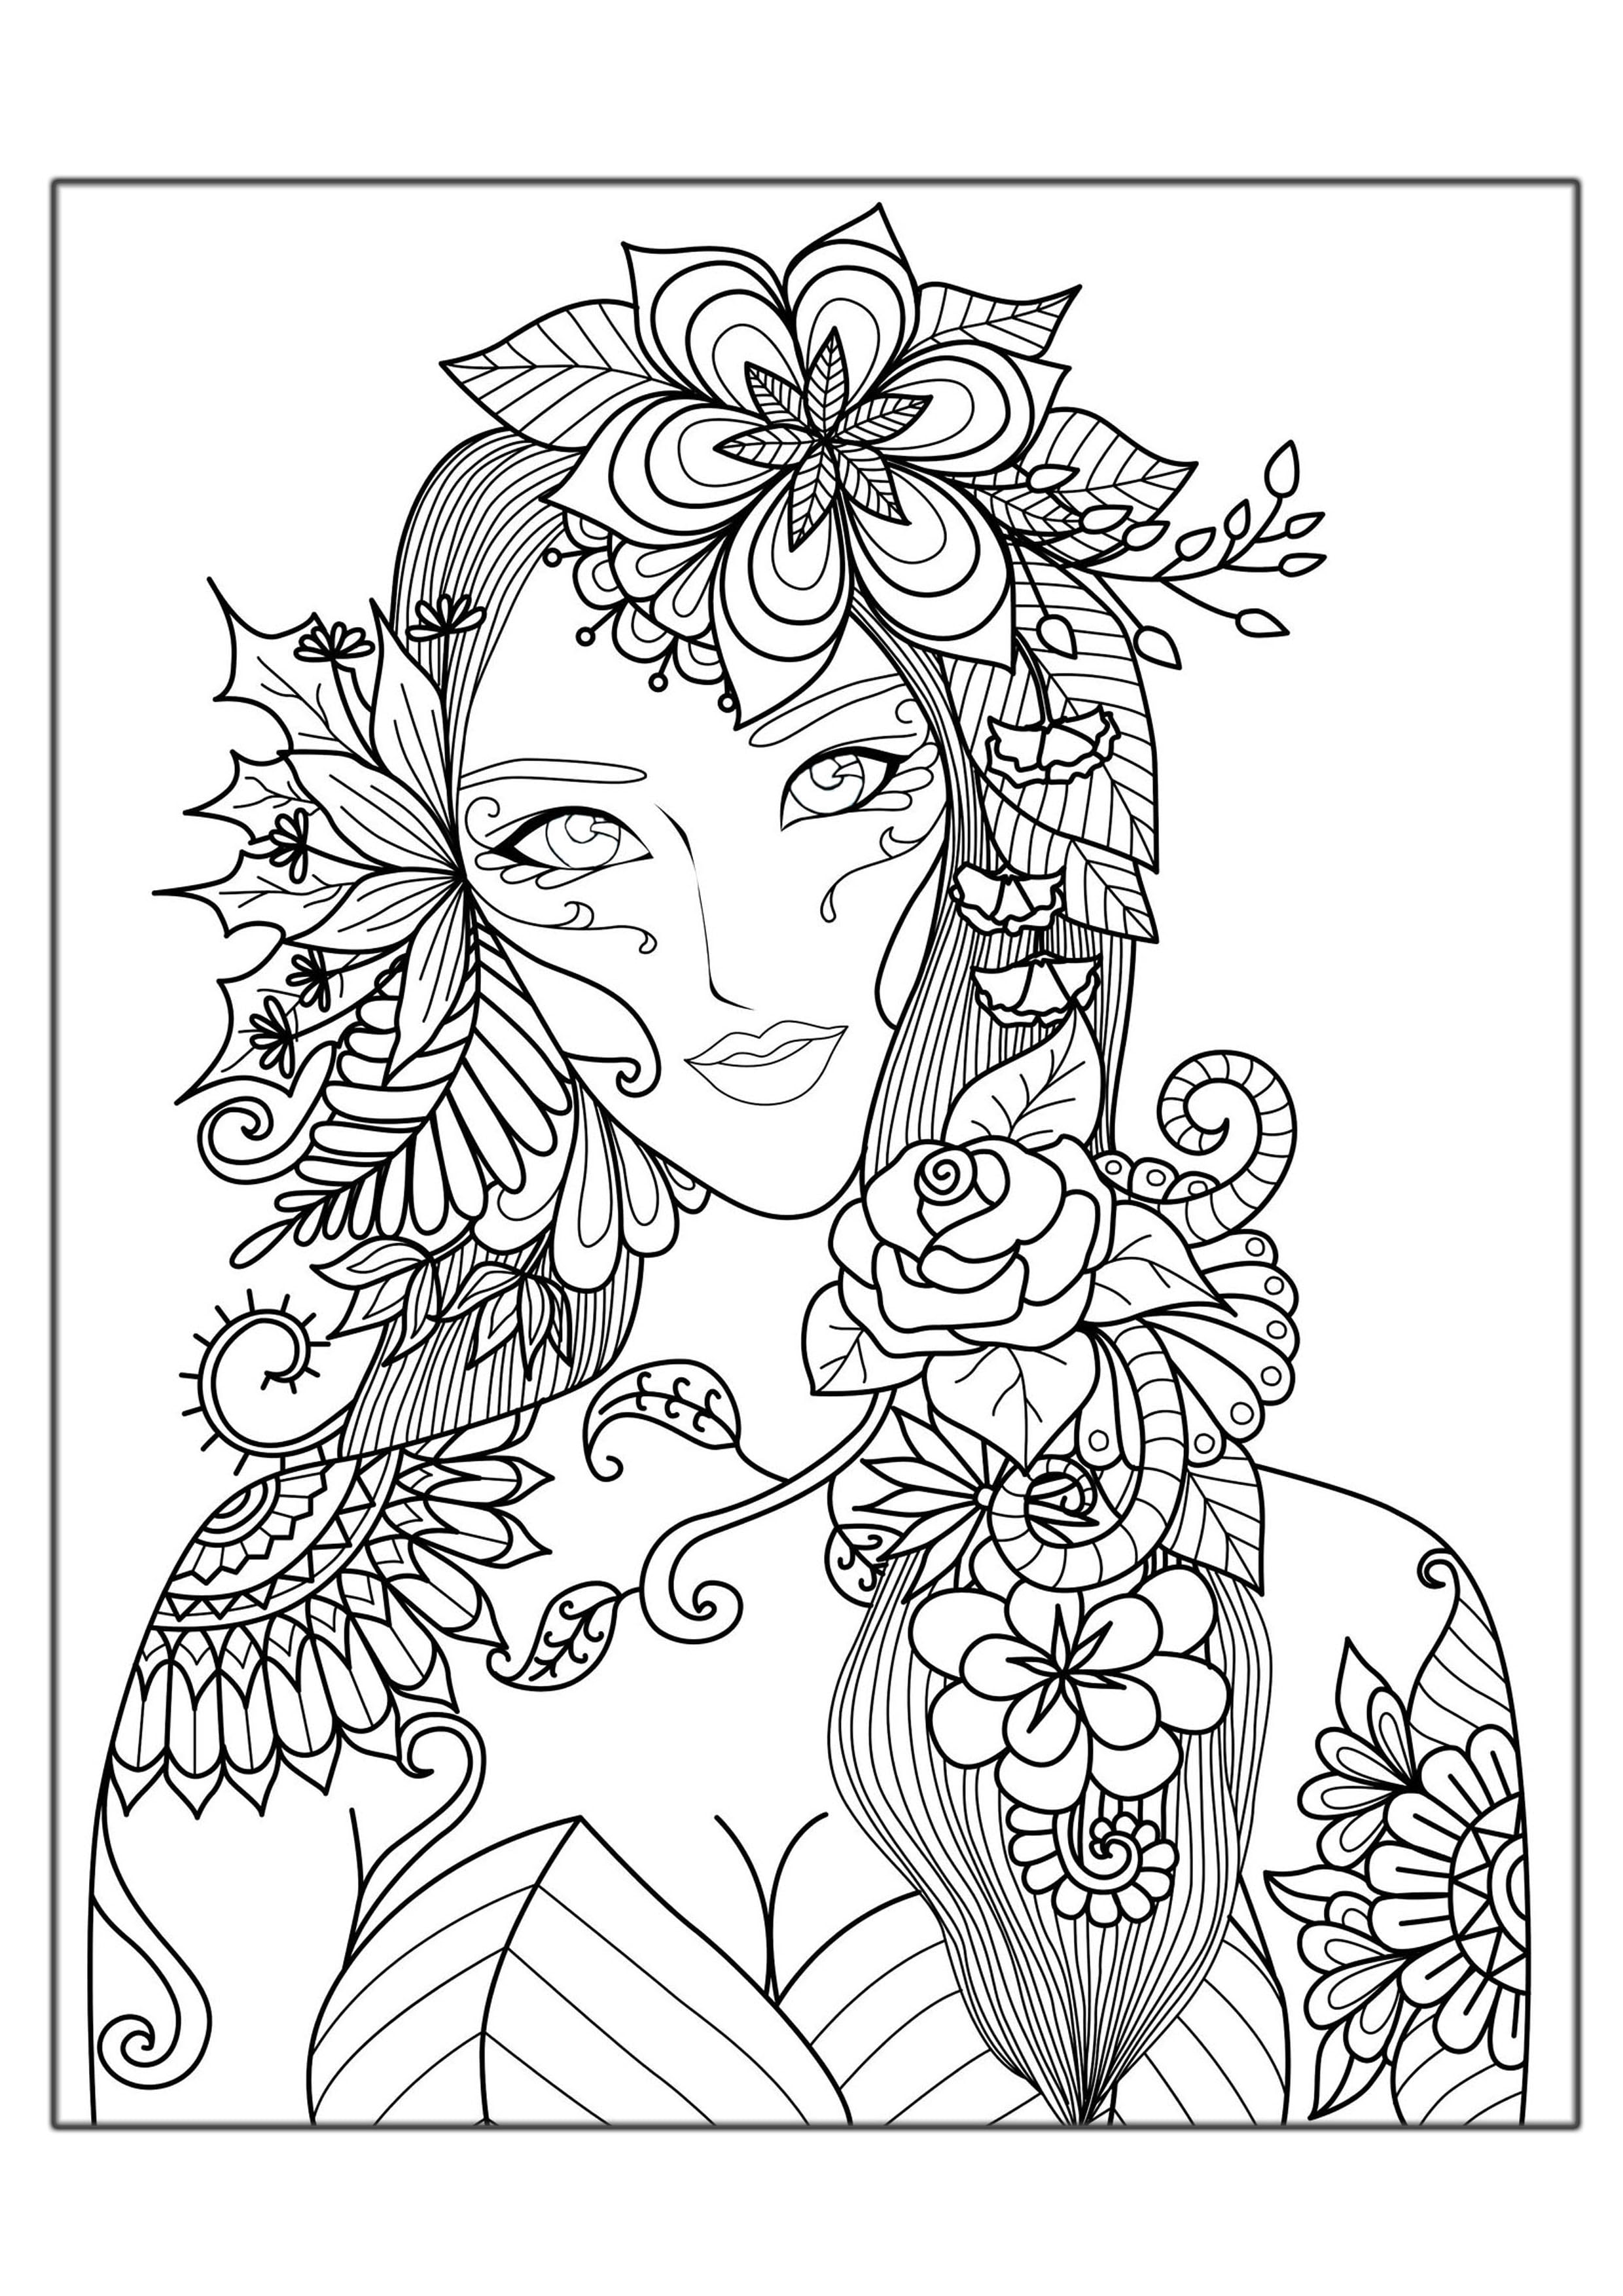 Free Coloring Pages Adults 68 With Free Coloring Pages Adults